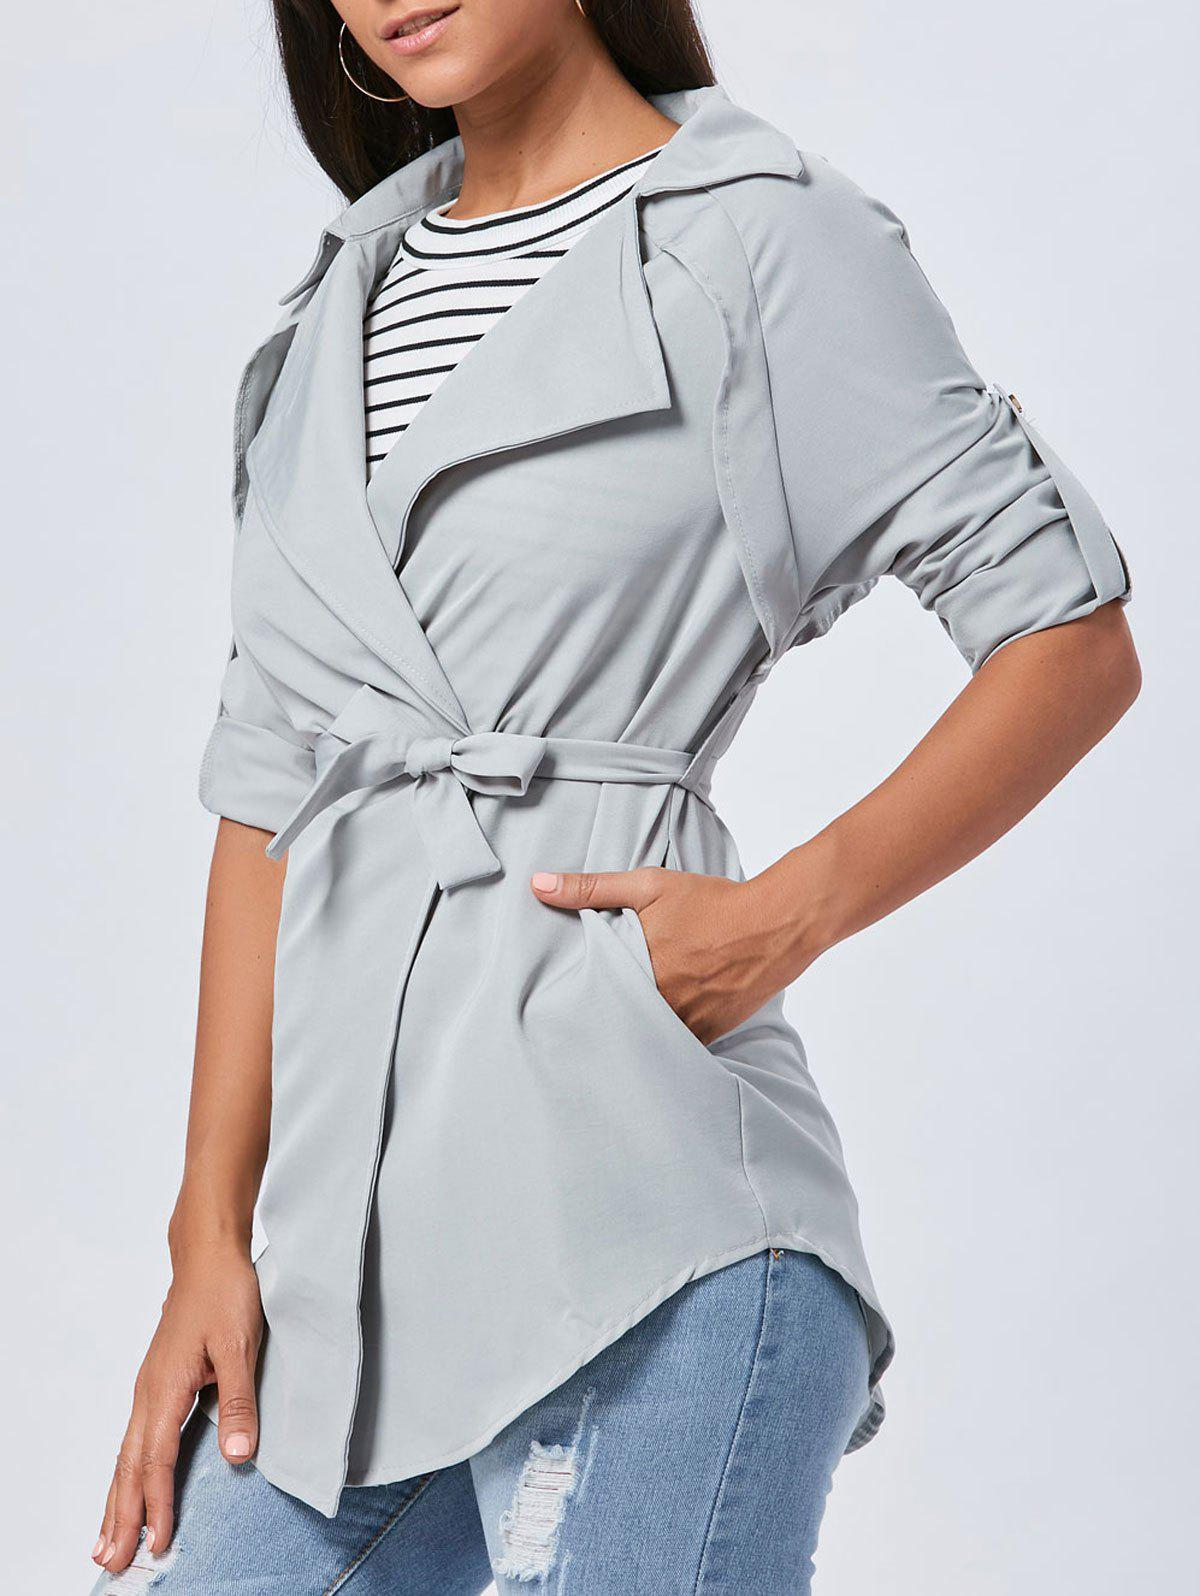 Manteau long revers - Gris L